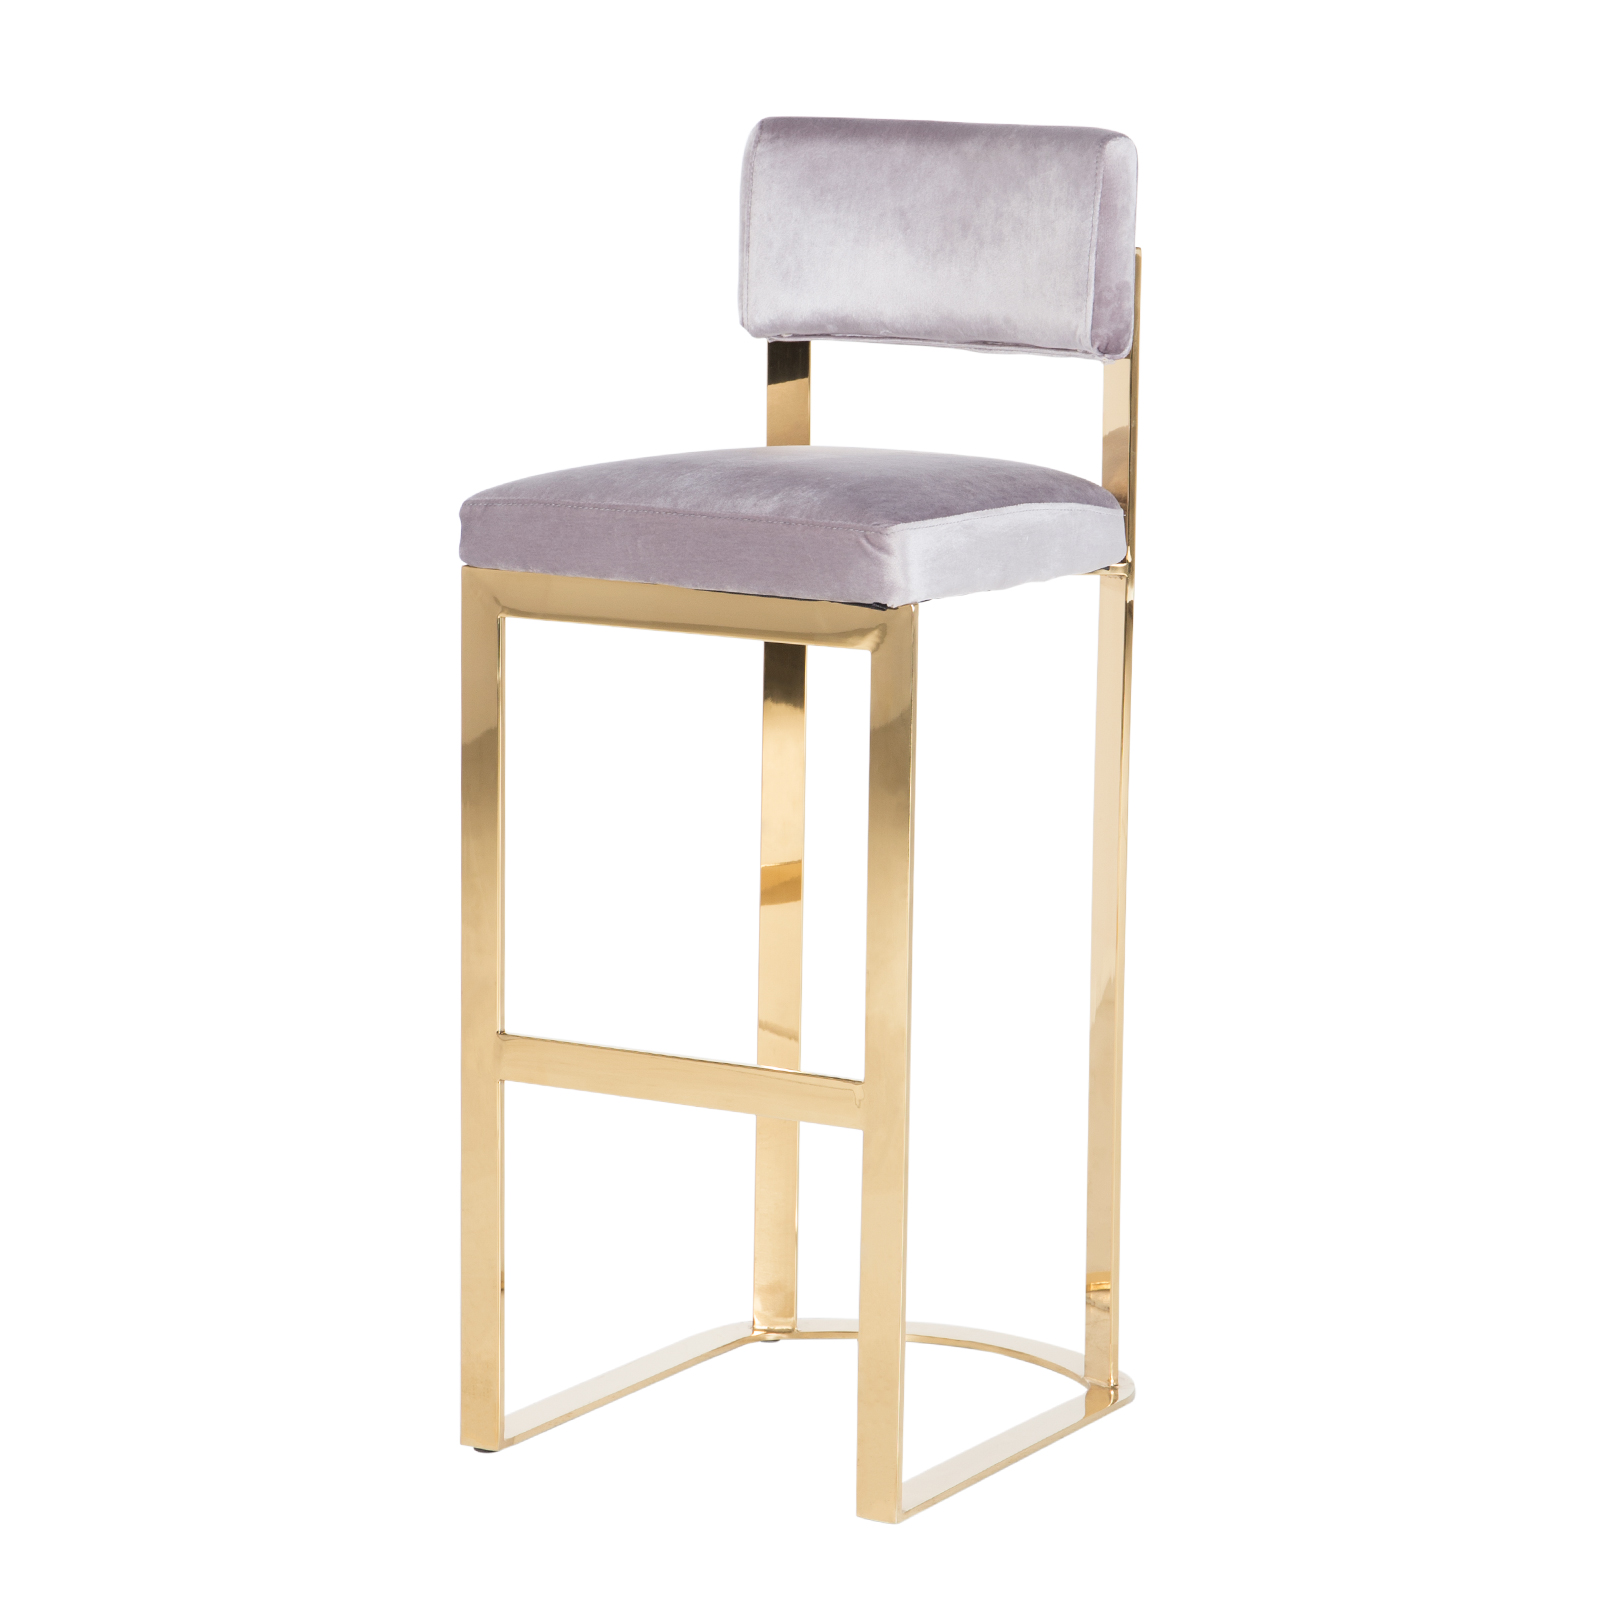 Terrific Garbo Barstool Gold Bar Stool Rentals Formdecor Gmtry Best Dining Table And Chair Ideas Images Gmtryco